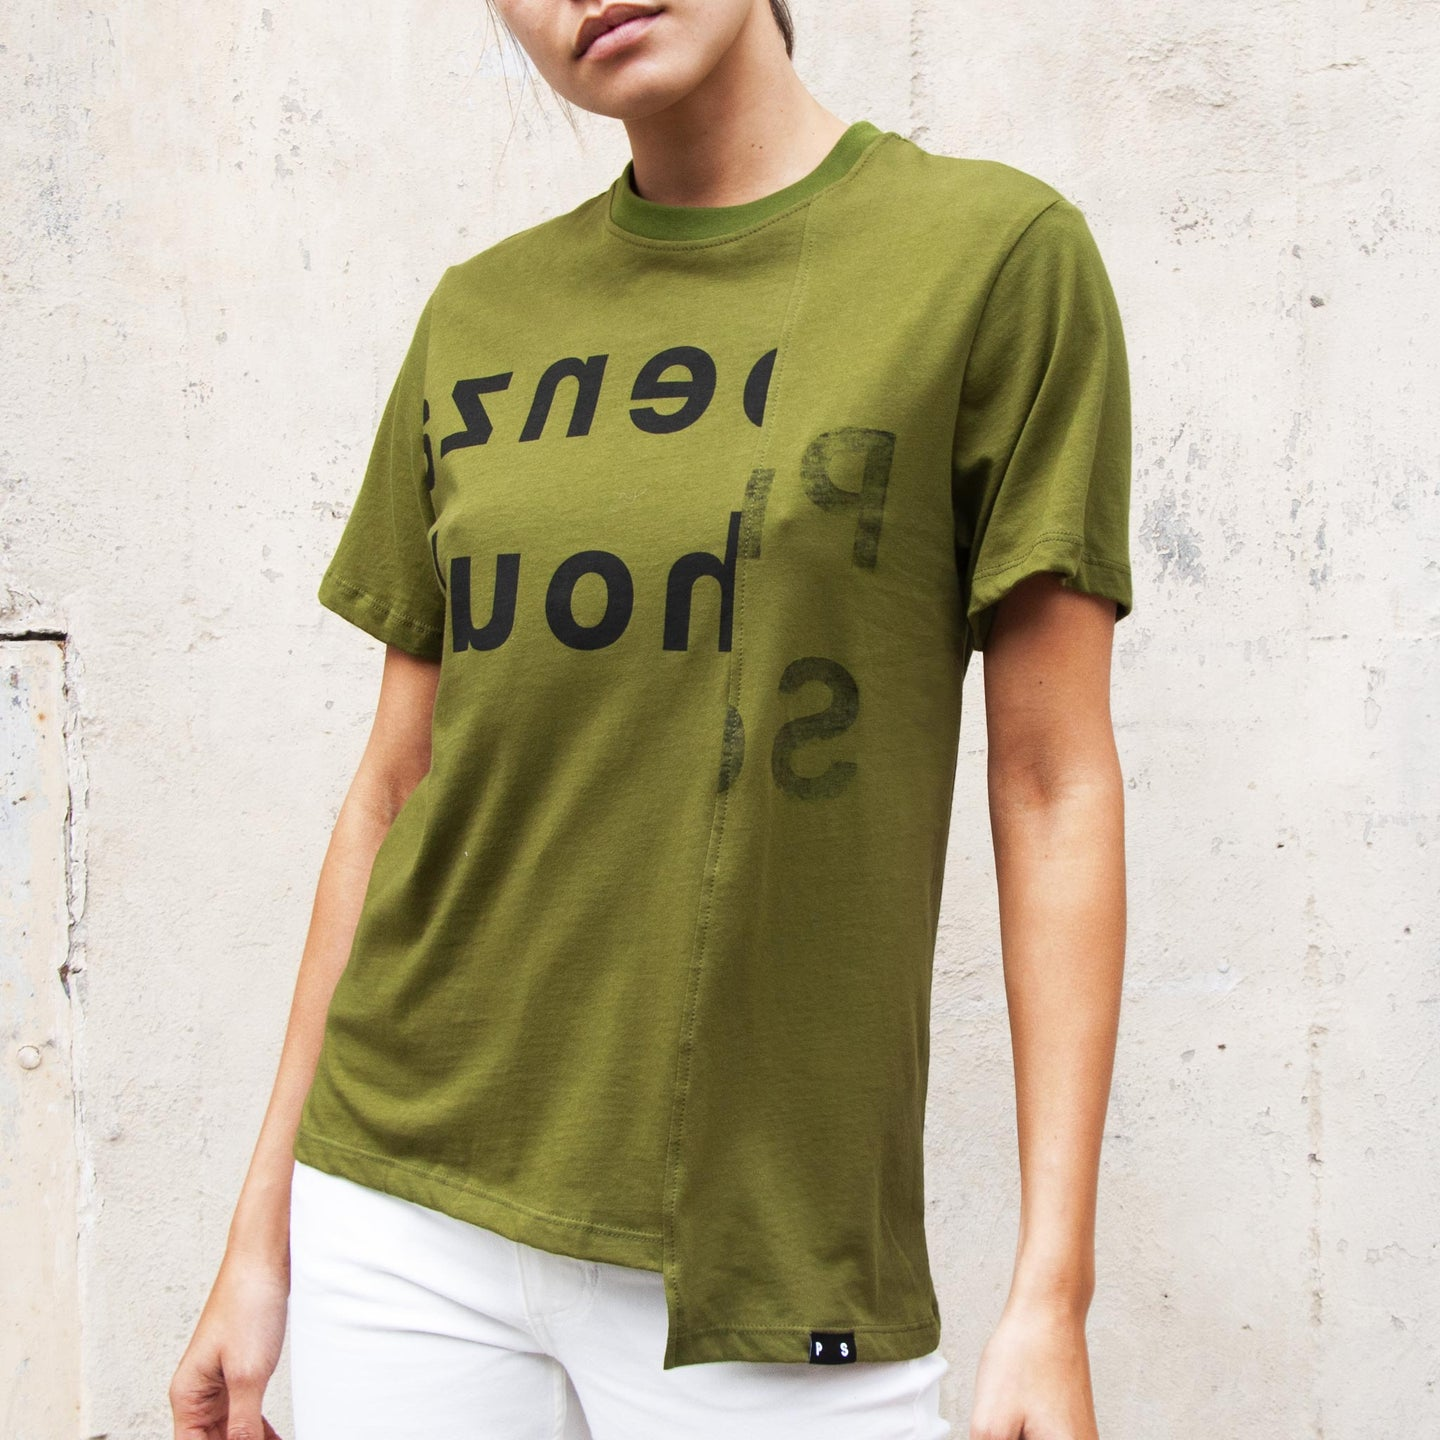 Proenza Schouler White Label - Asymmetrical Tee, front view, available at LCD.